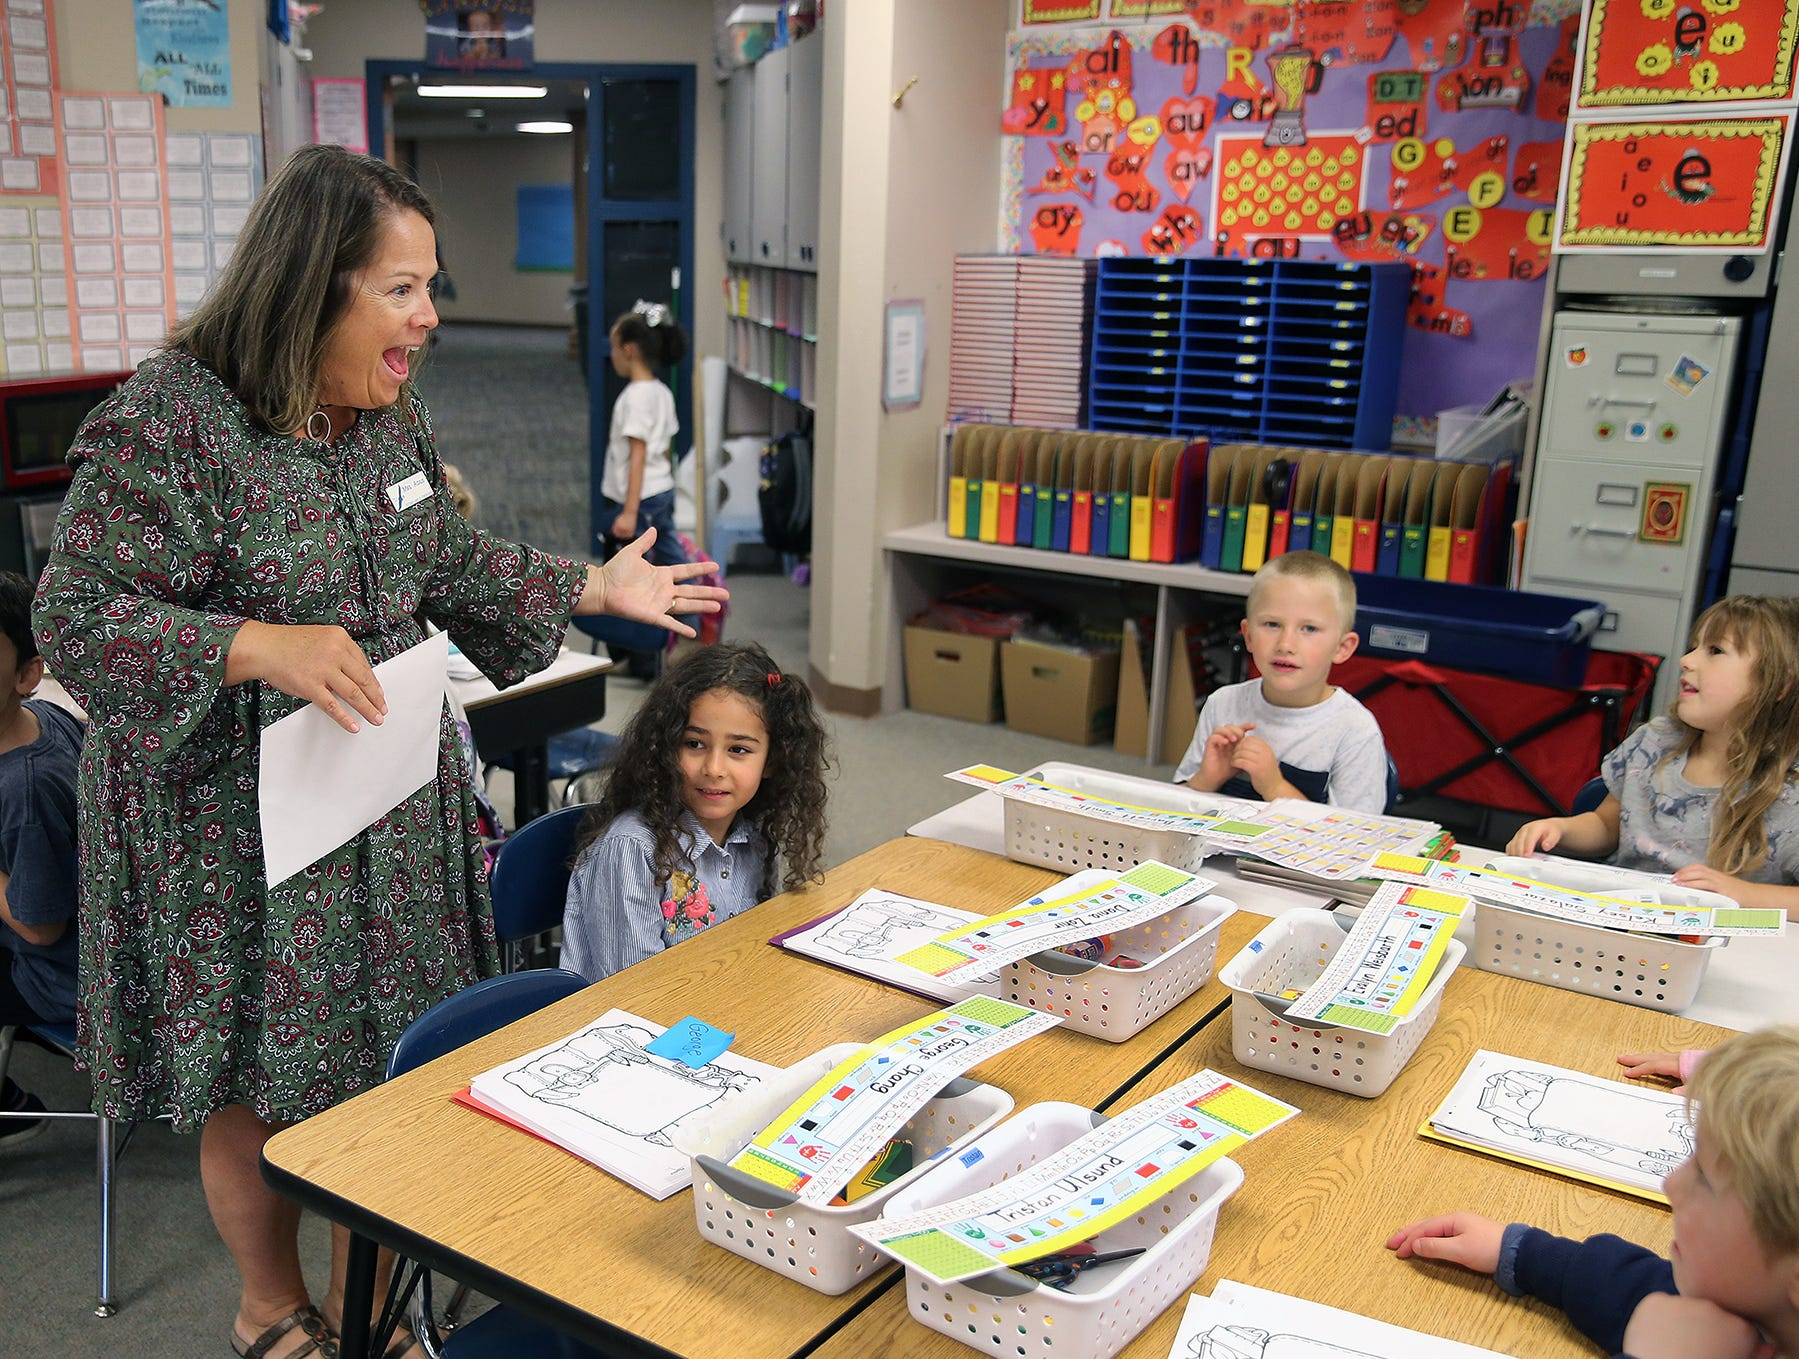 First grade teacher Terri Agius greets students on the first day of school at Kitsap Lake Elementary.